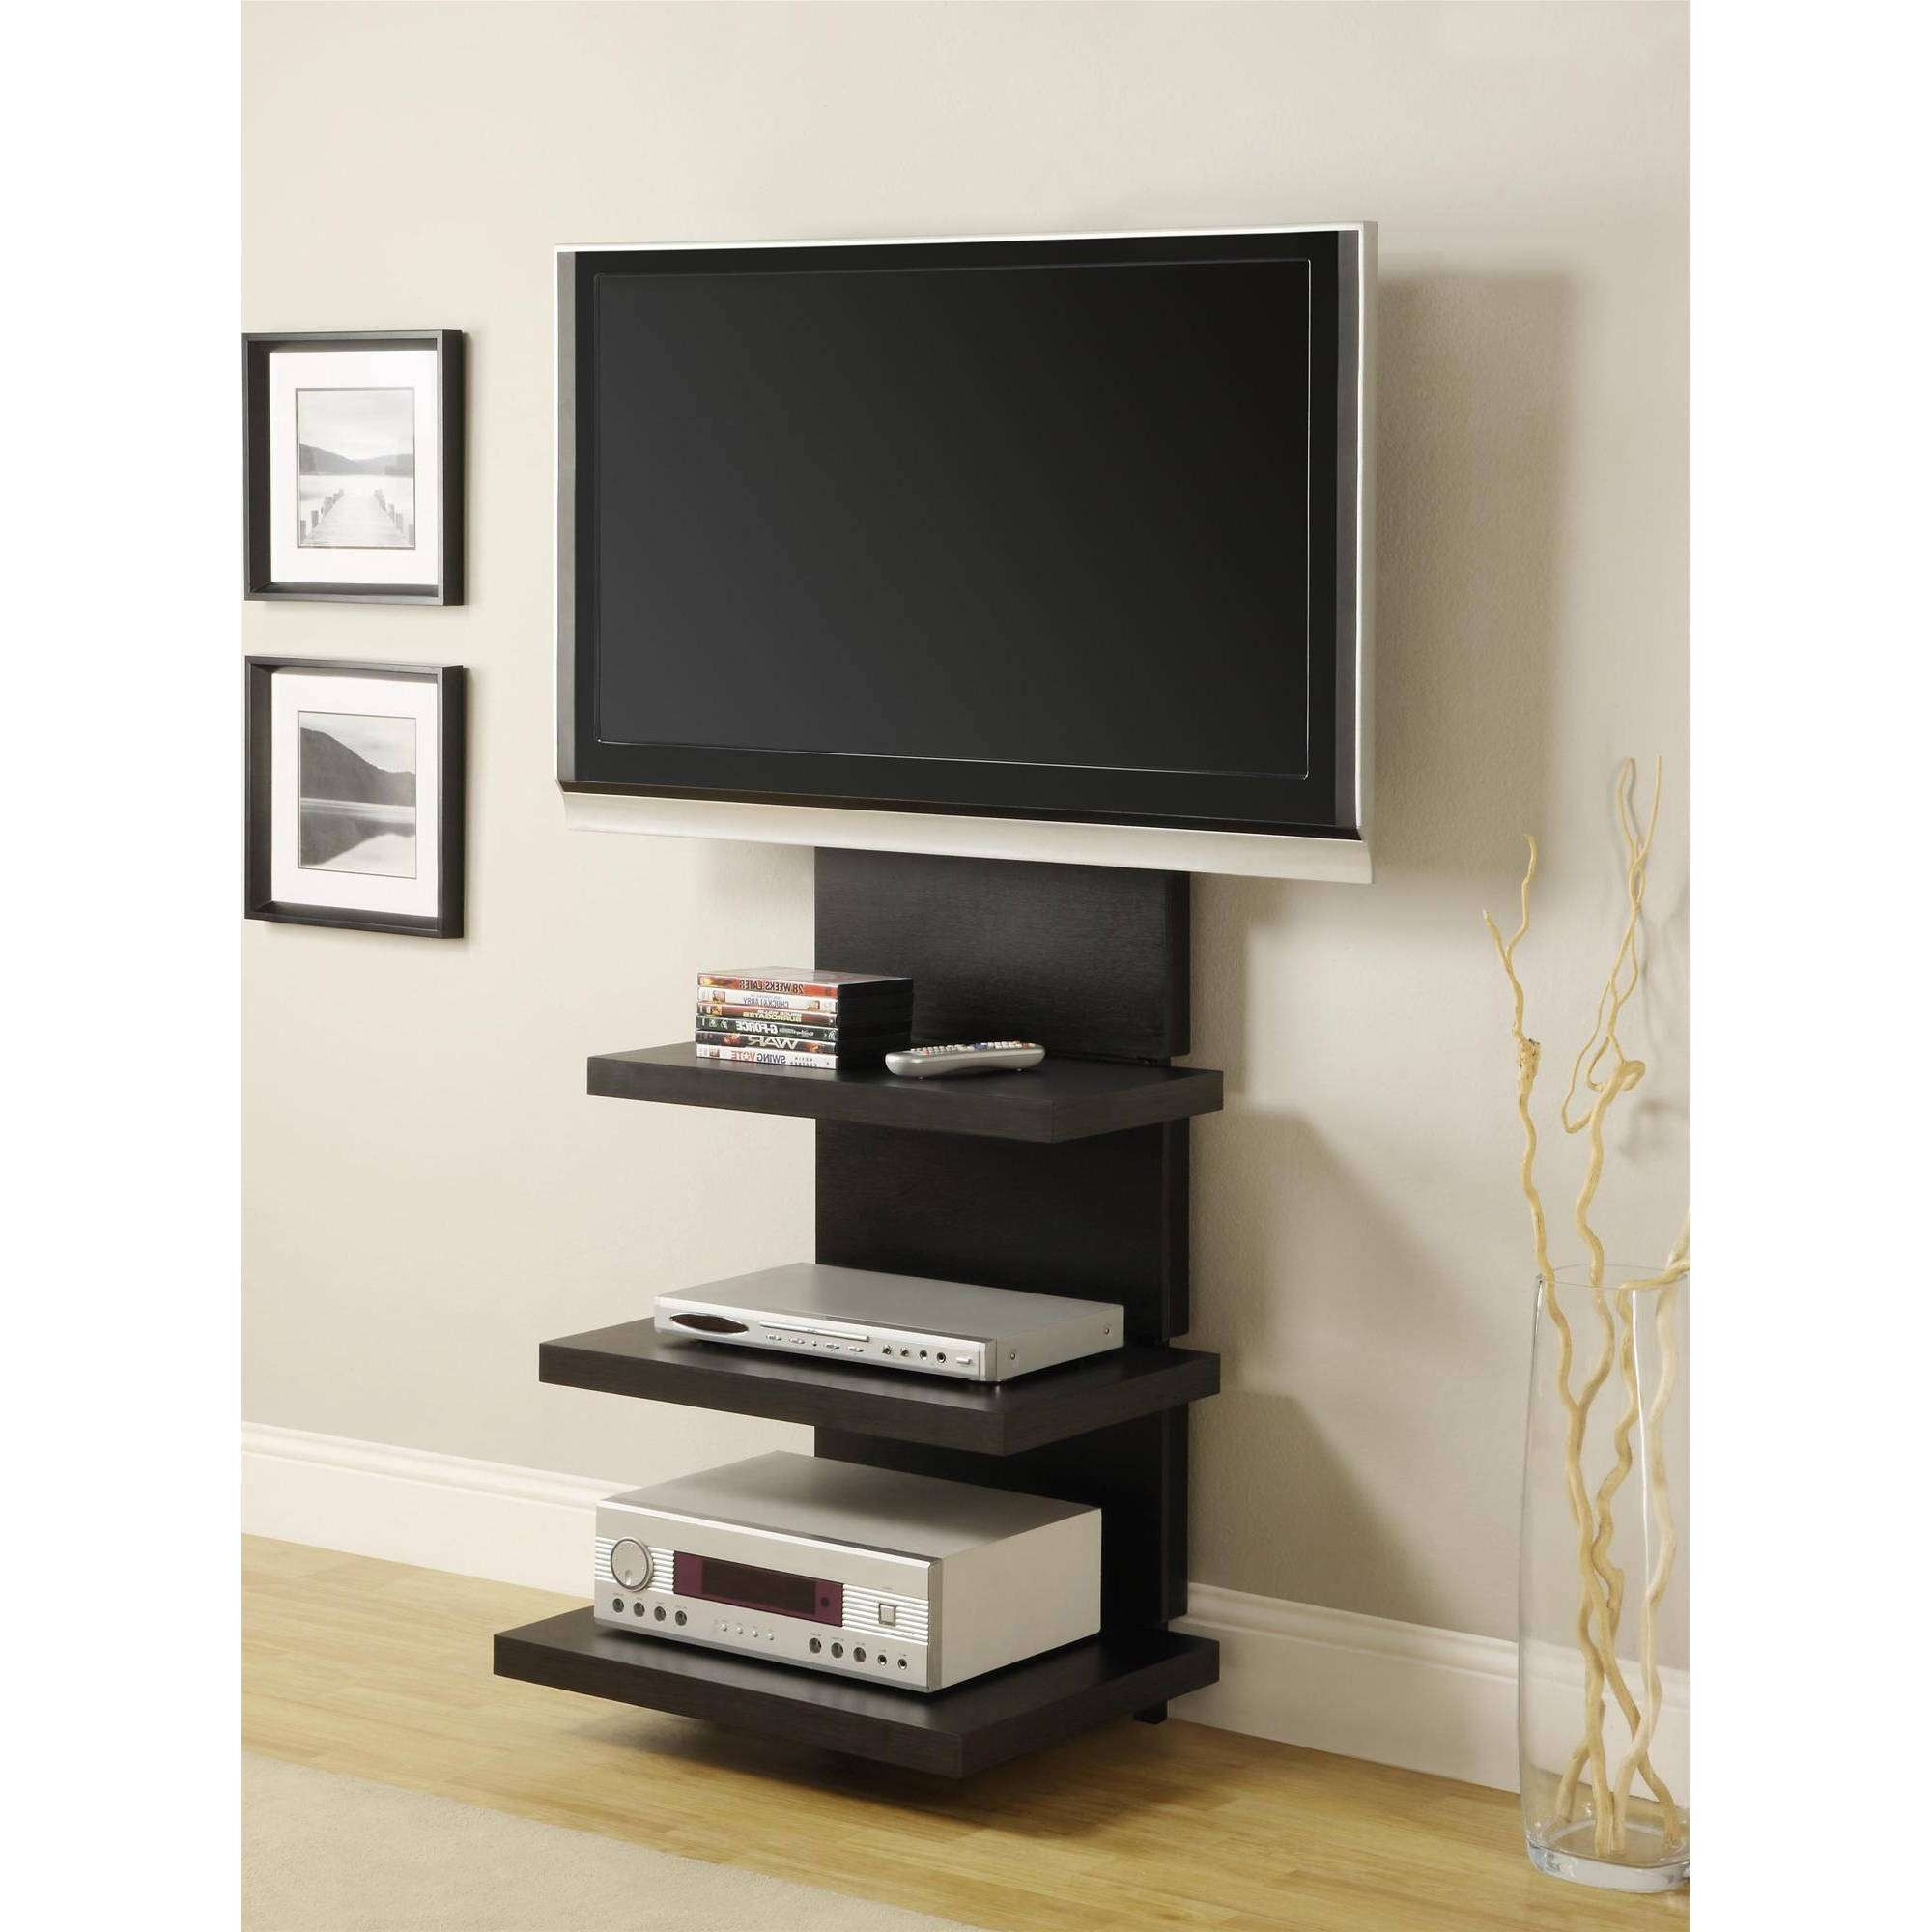 Ameriwood Home Elevation Altramount Tv Stand For Tvs Up To 60 For Wall Mounted Tv Stands For Flat Screens (View 14 of 15)